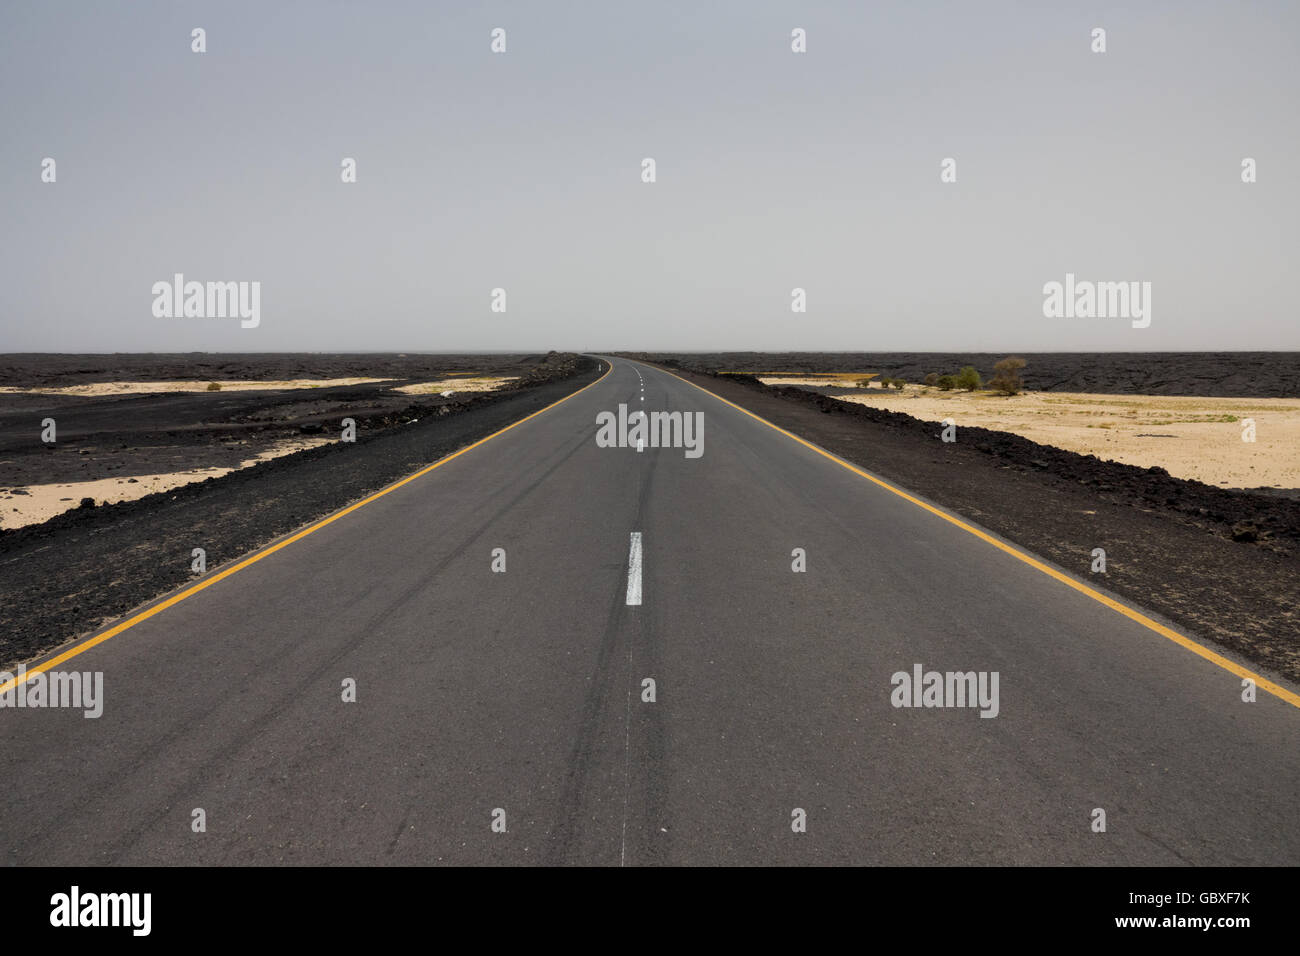 a Chinese-built highway between Ethiopia and Djibouti - Stock Image